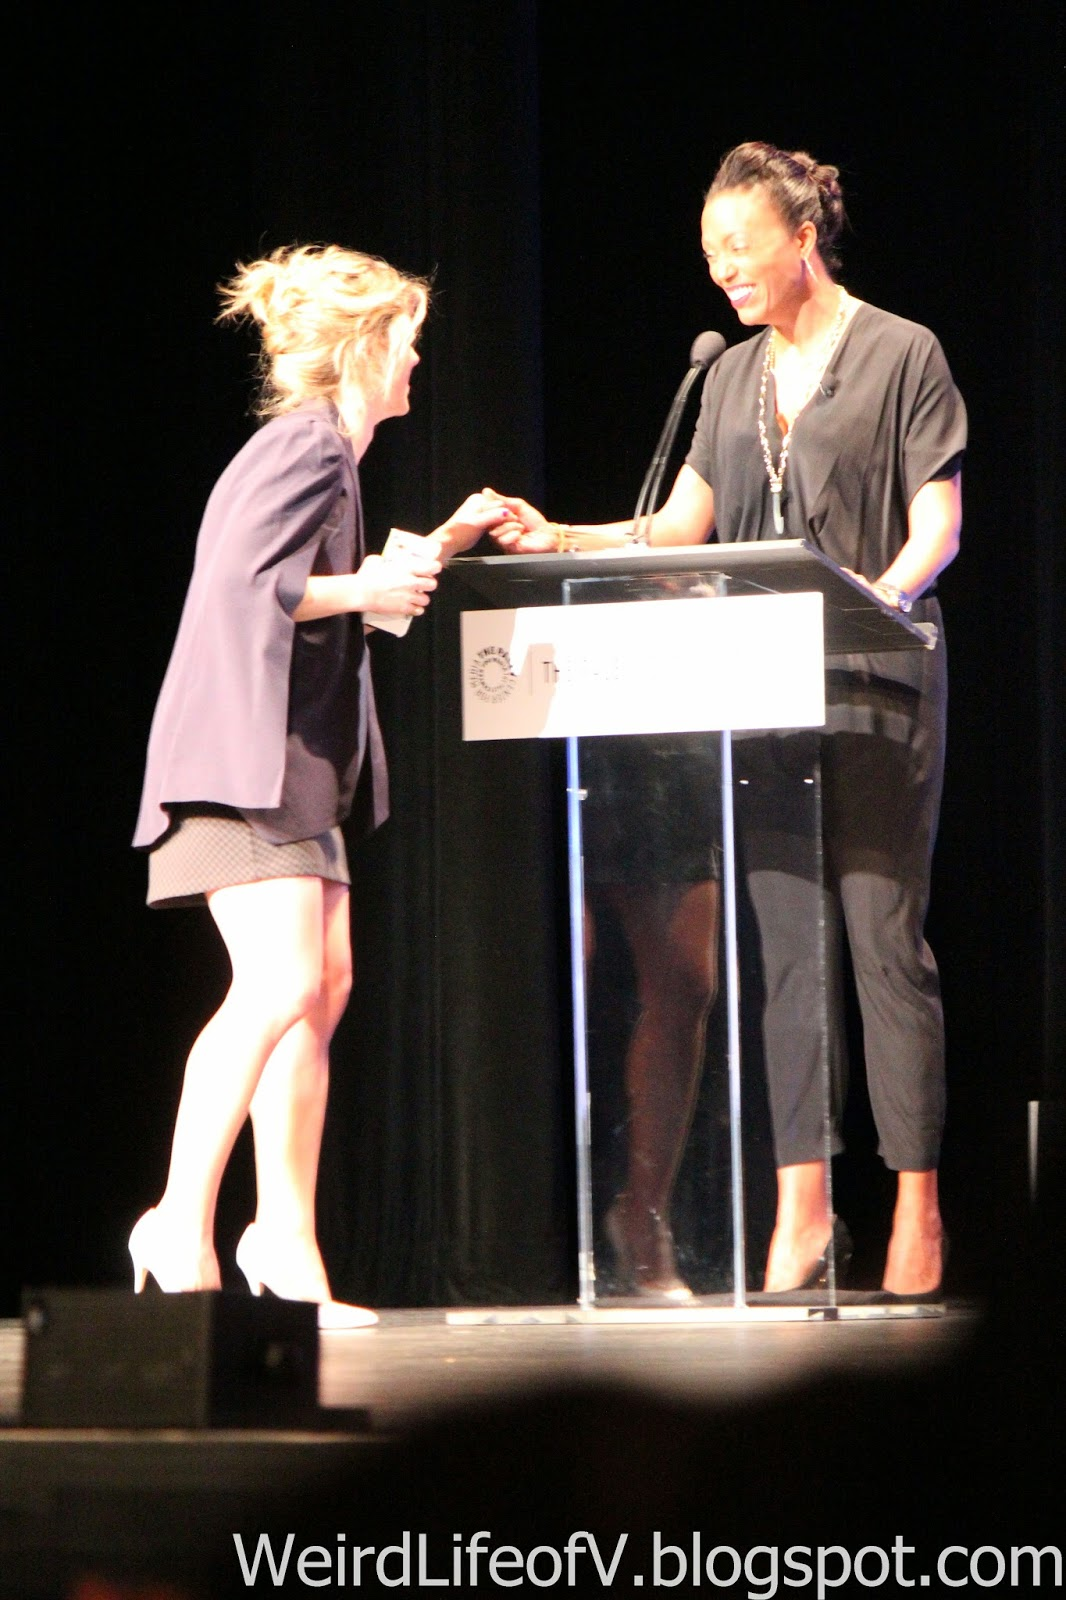 Emily Bett Rickards stops by the moderator's podium to talk to Aisha Tyler